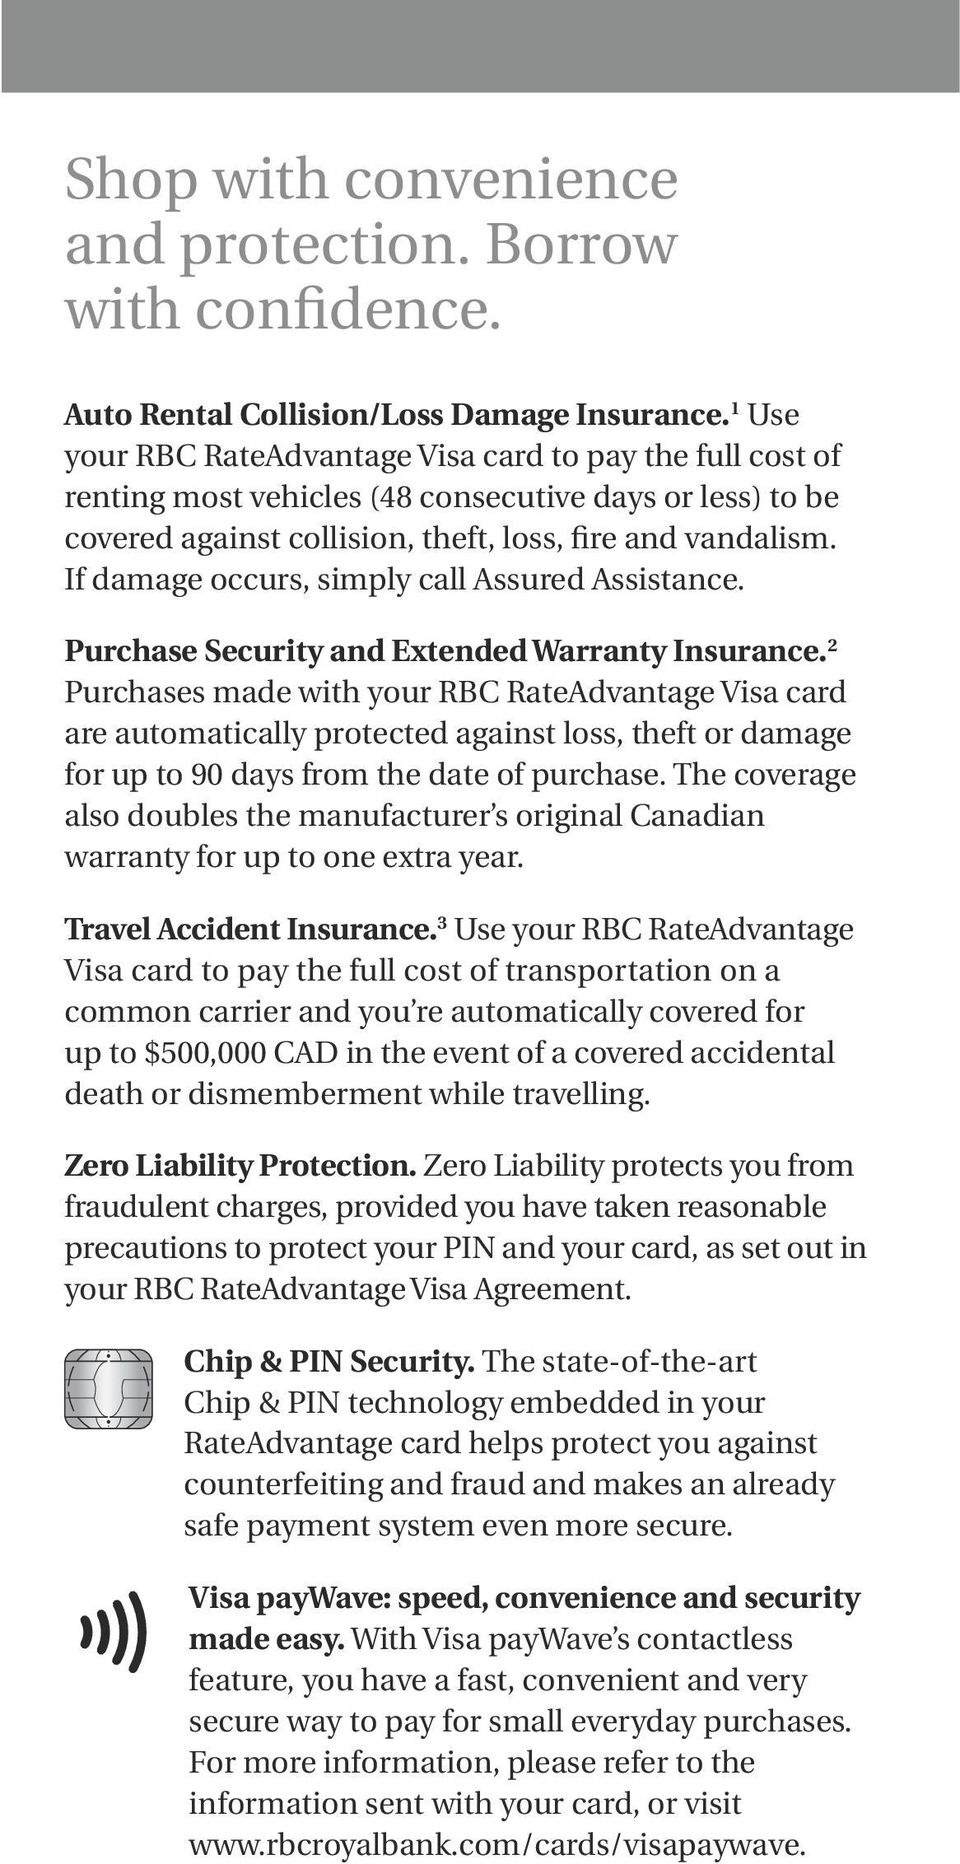 If damage occurs, simply call Assured Assistance. Purchase Security and Extended Warranty Insurance.